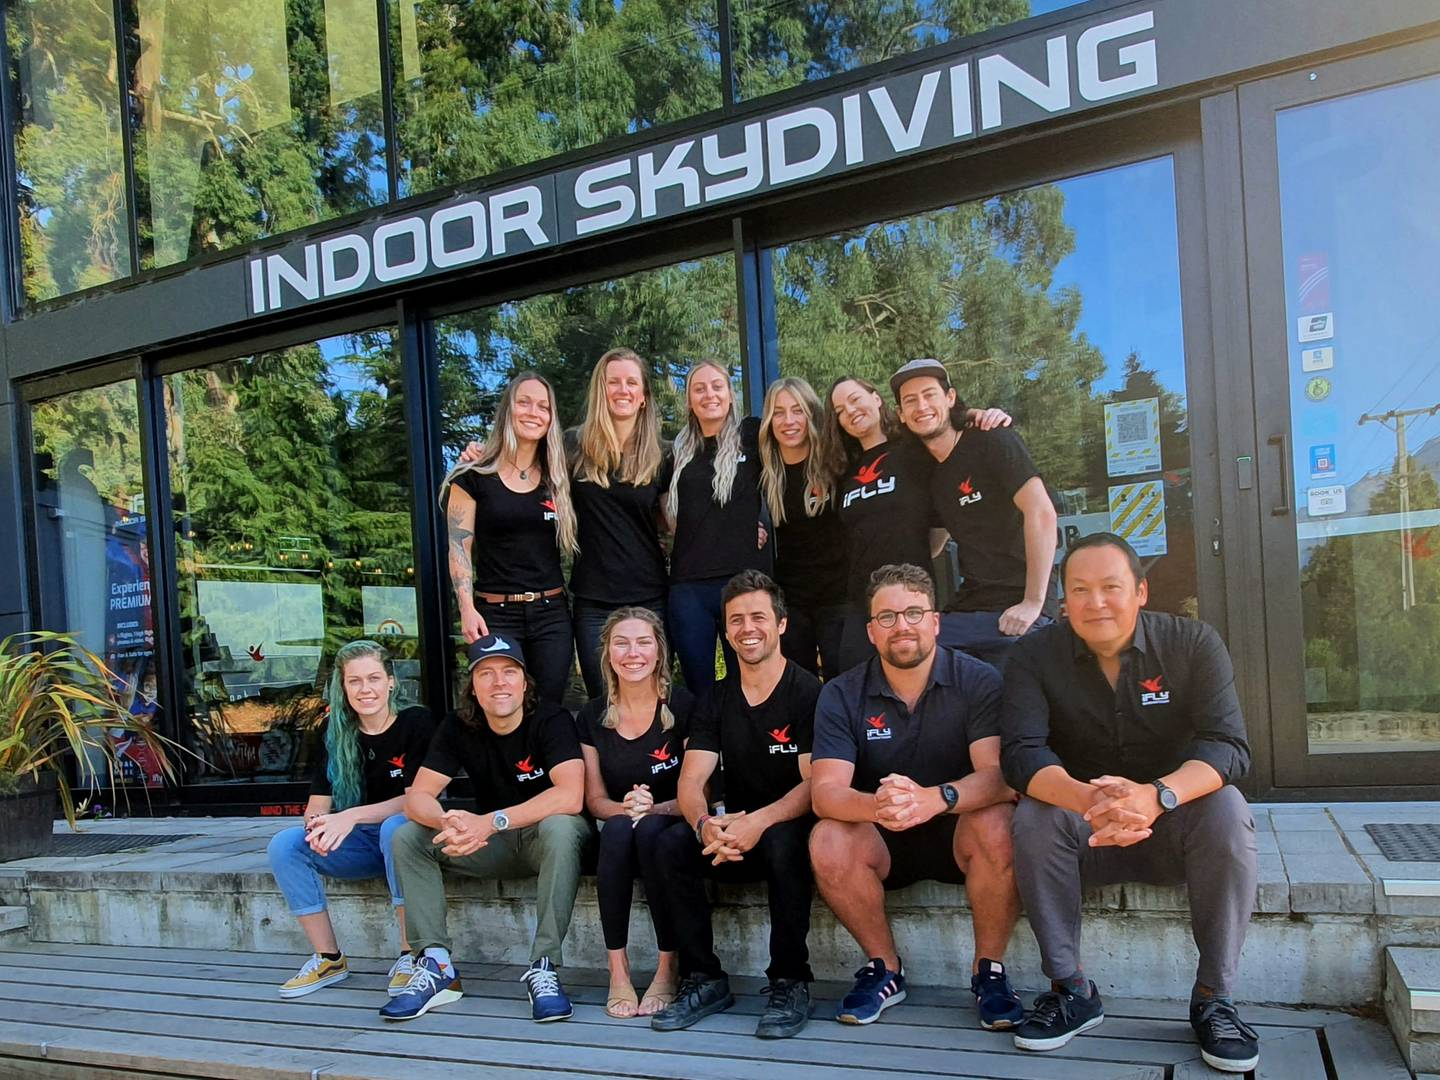 Matt Wong, right, with the Brecon Street iFly team in Queenstown. Photo: Supplied